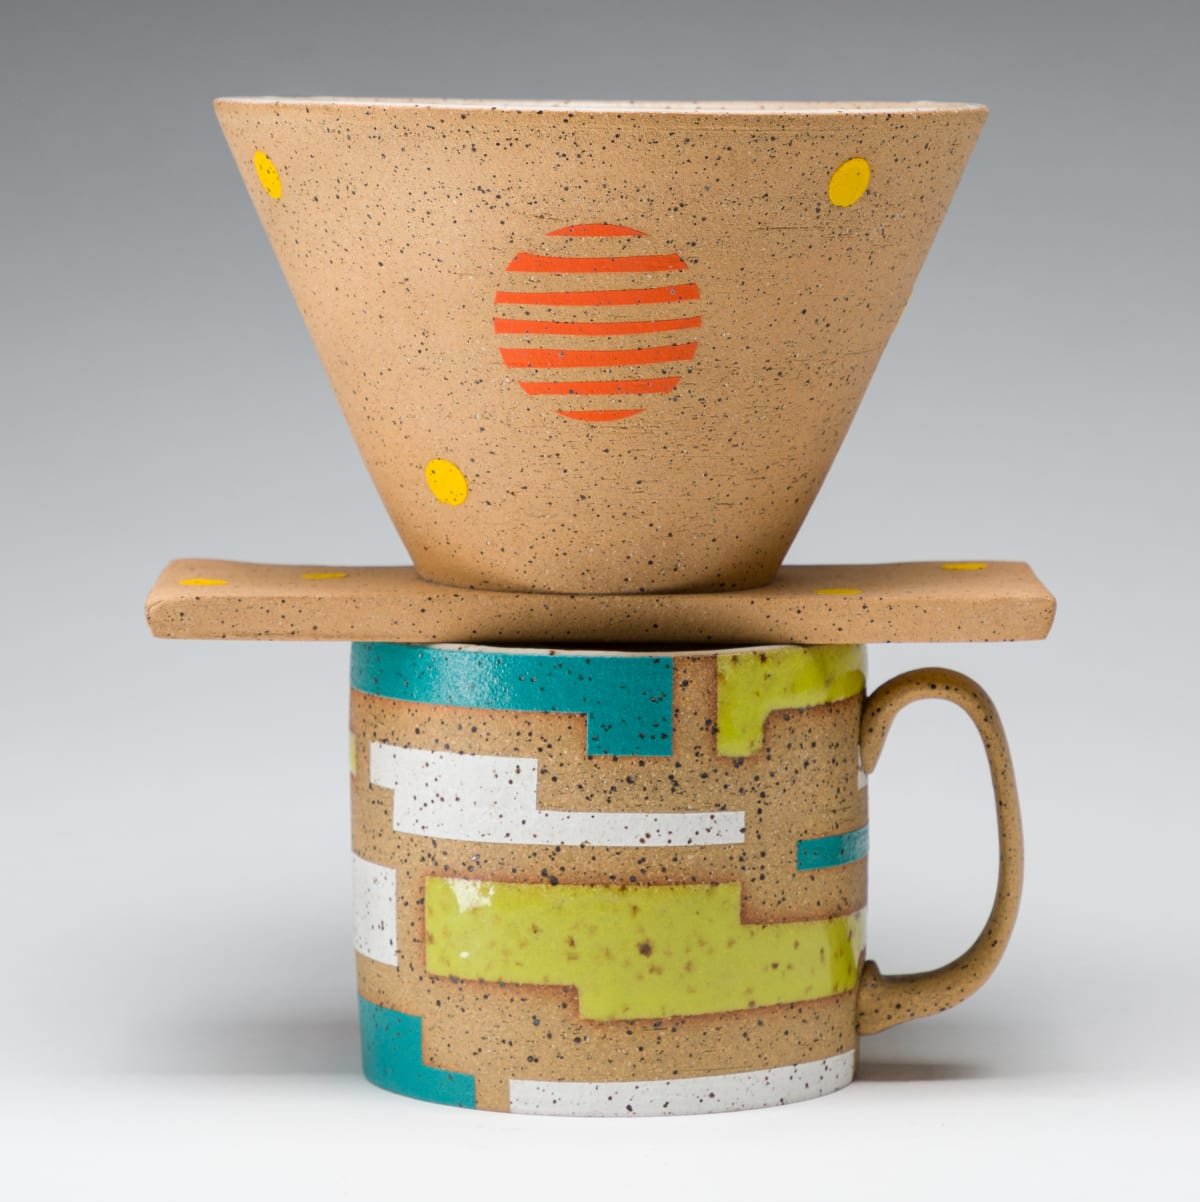 Rachel Donner, Coffee Pour-Over with Yellow Dots, 2019